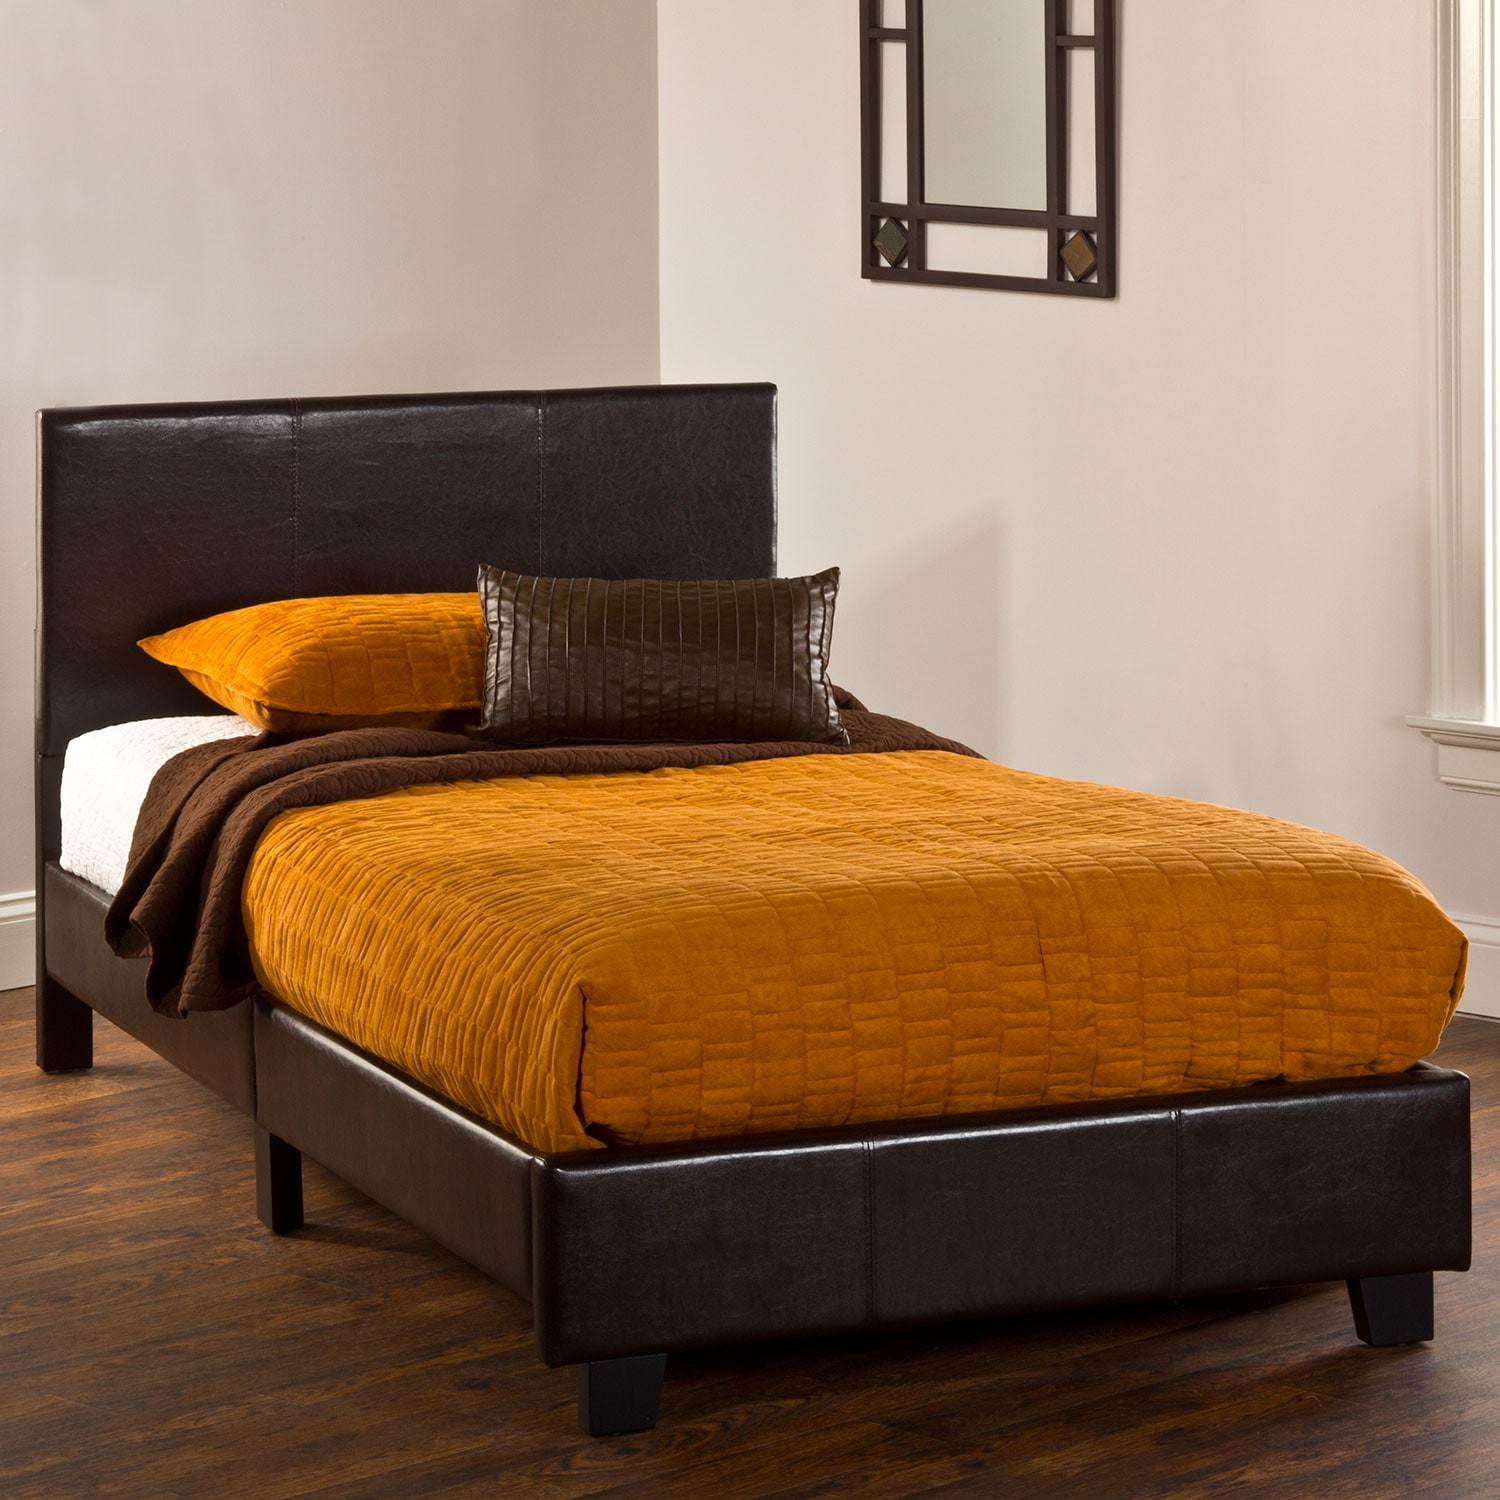 Bedroom Furniture - Spring Twin Bed in a Box - Brown